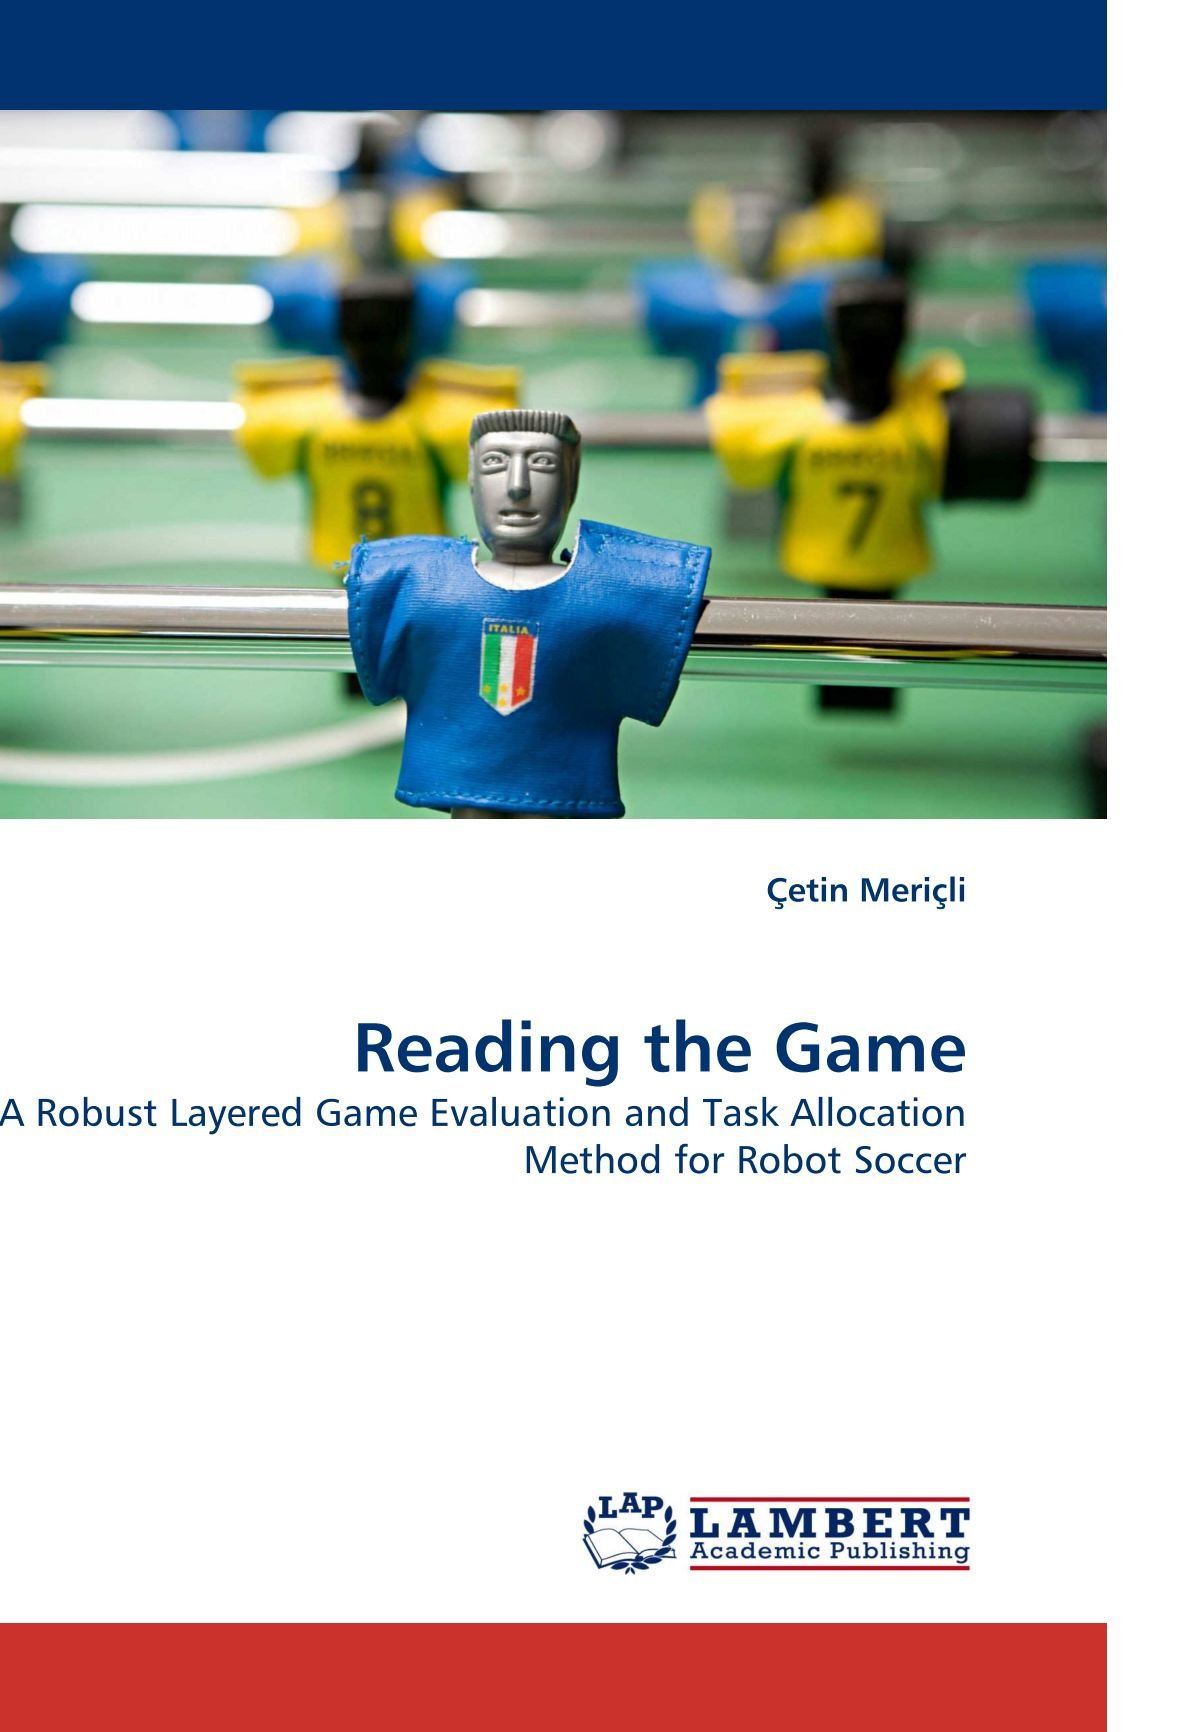 Reading the Game: A Robust Layered Game Evaluation and Task Allocation Method for Robot Soccer pdf